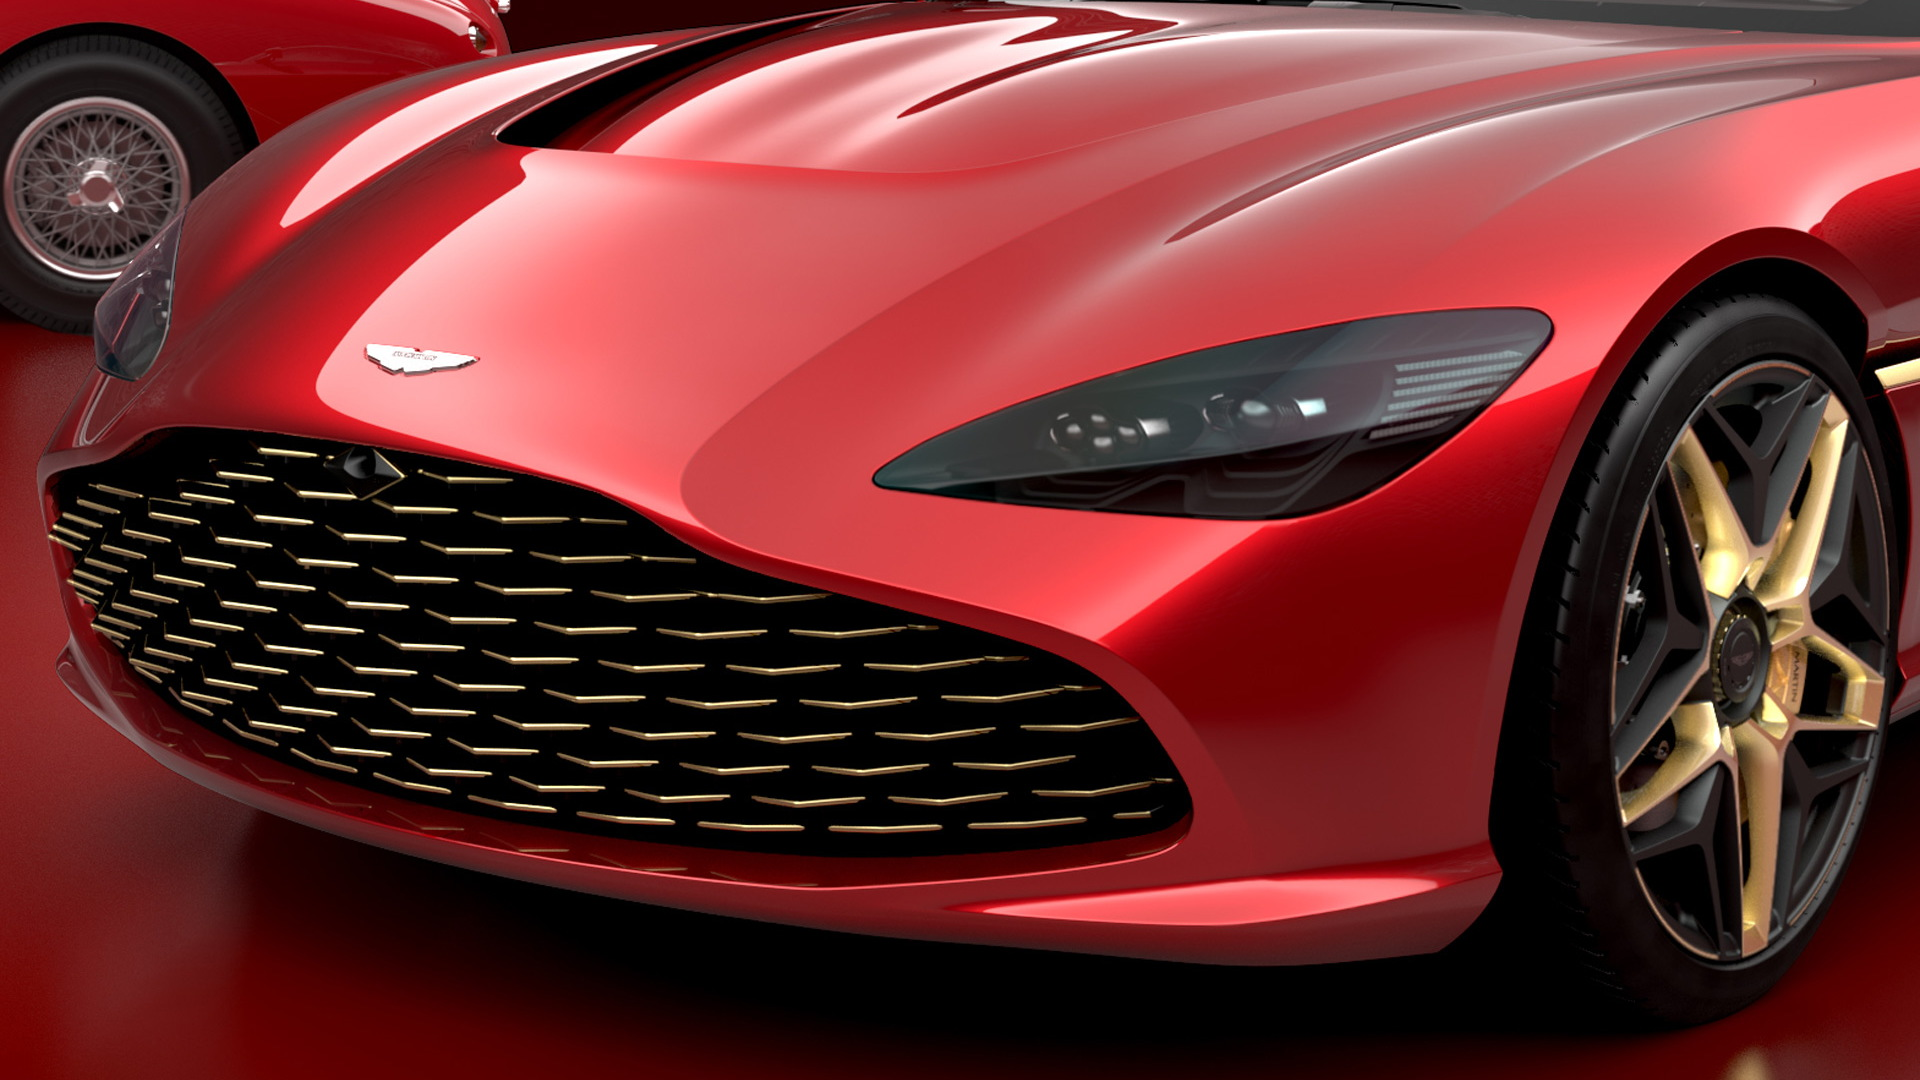 Aston Martin Previews Dbs Gt Zagato To Be Sold Alongside